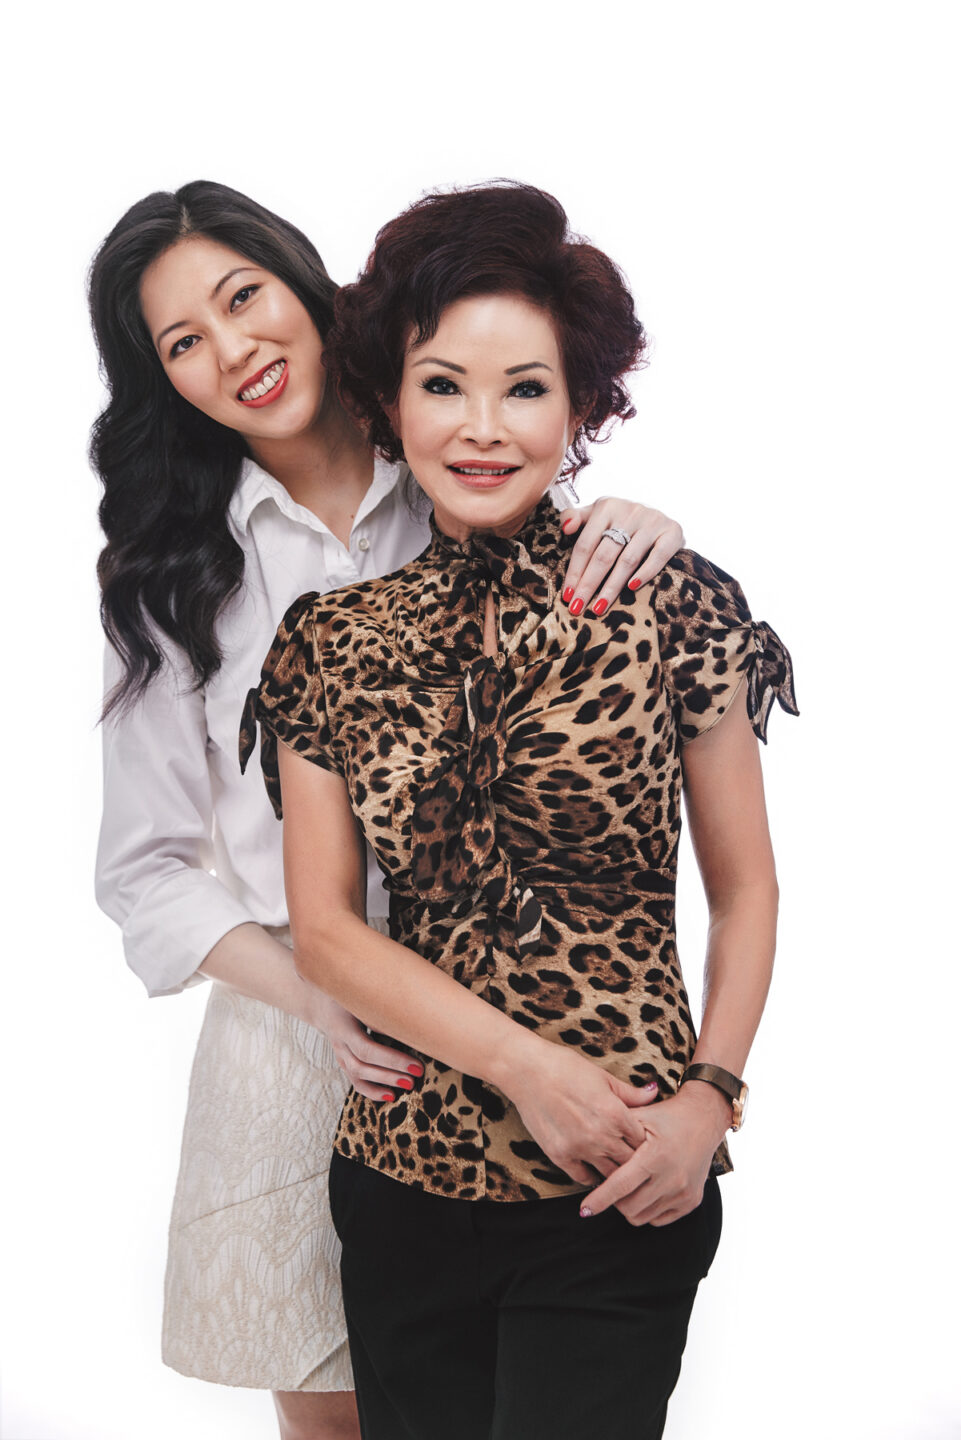 Mothers And Daughters Talk About Love Across Generations